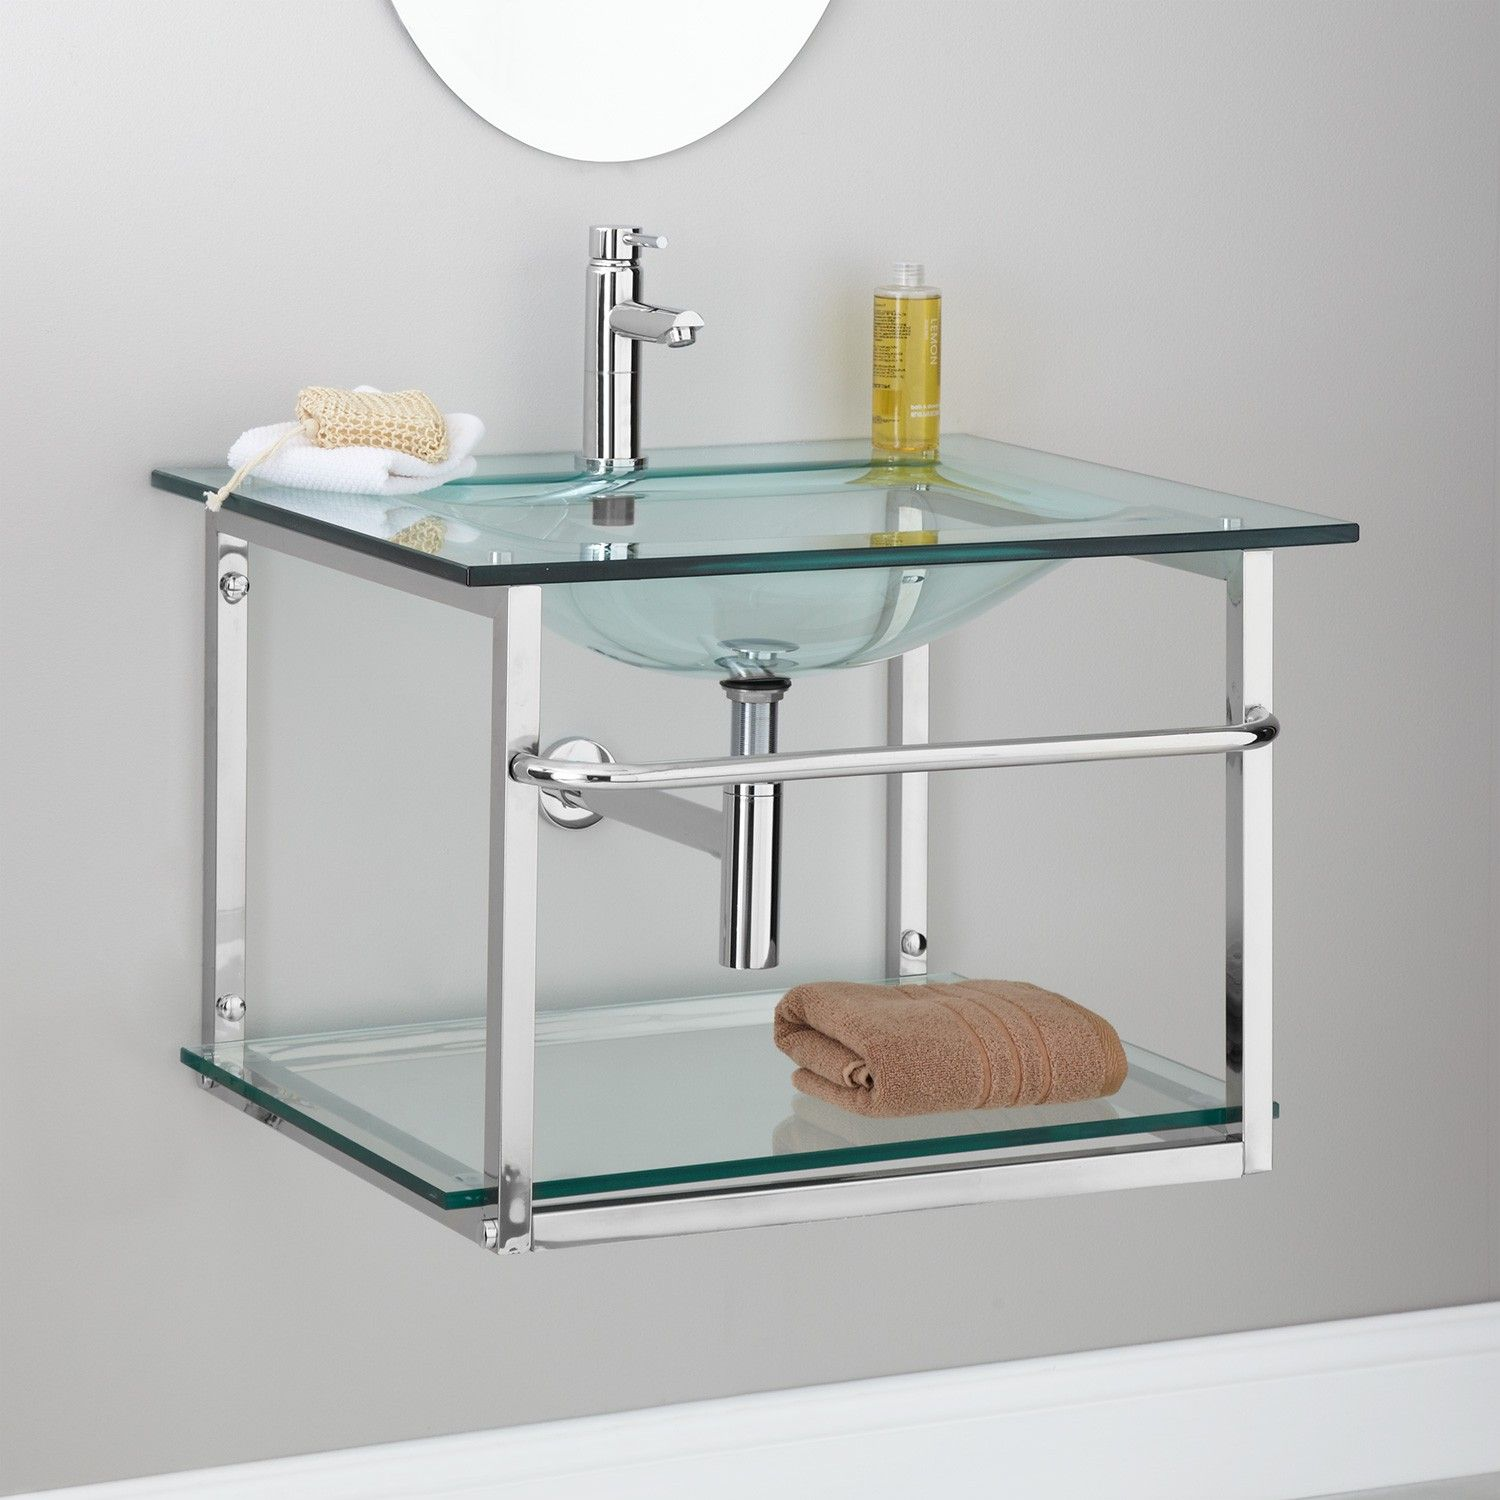 Zuri Clear Glass Wall Hung Sink With Stainless Steel Towel Bar